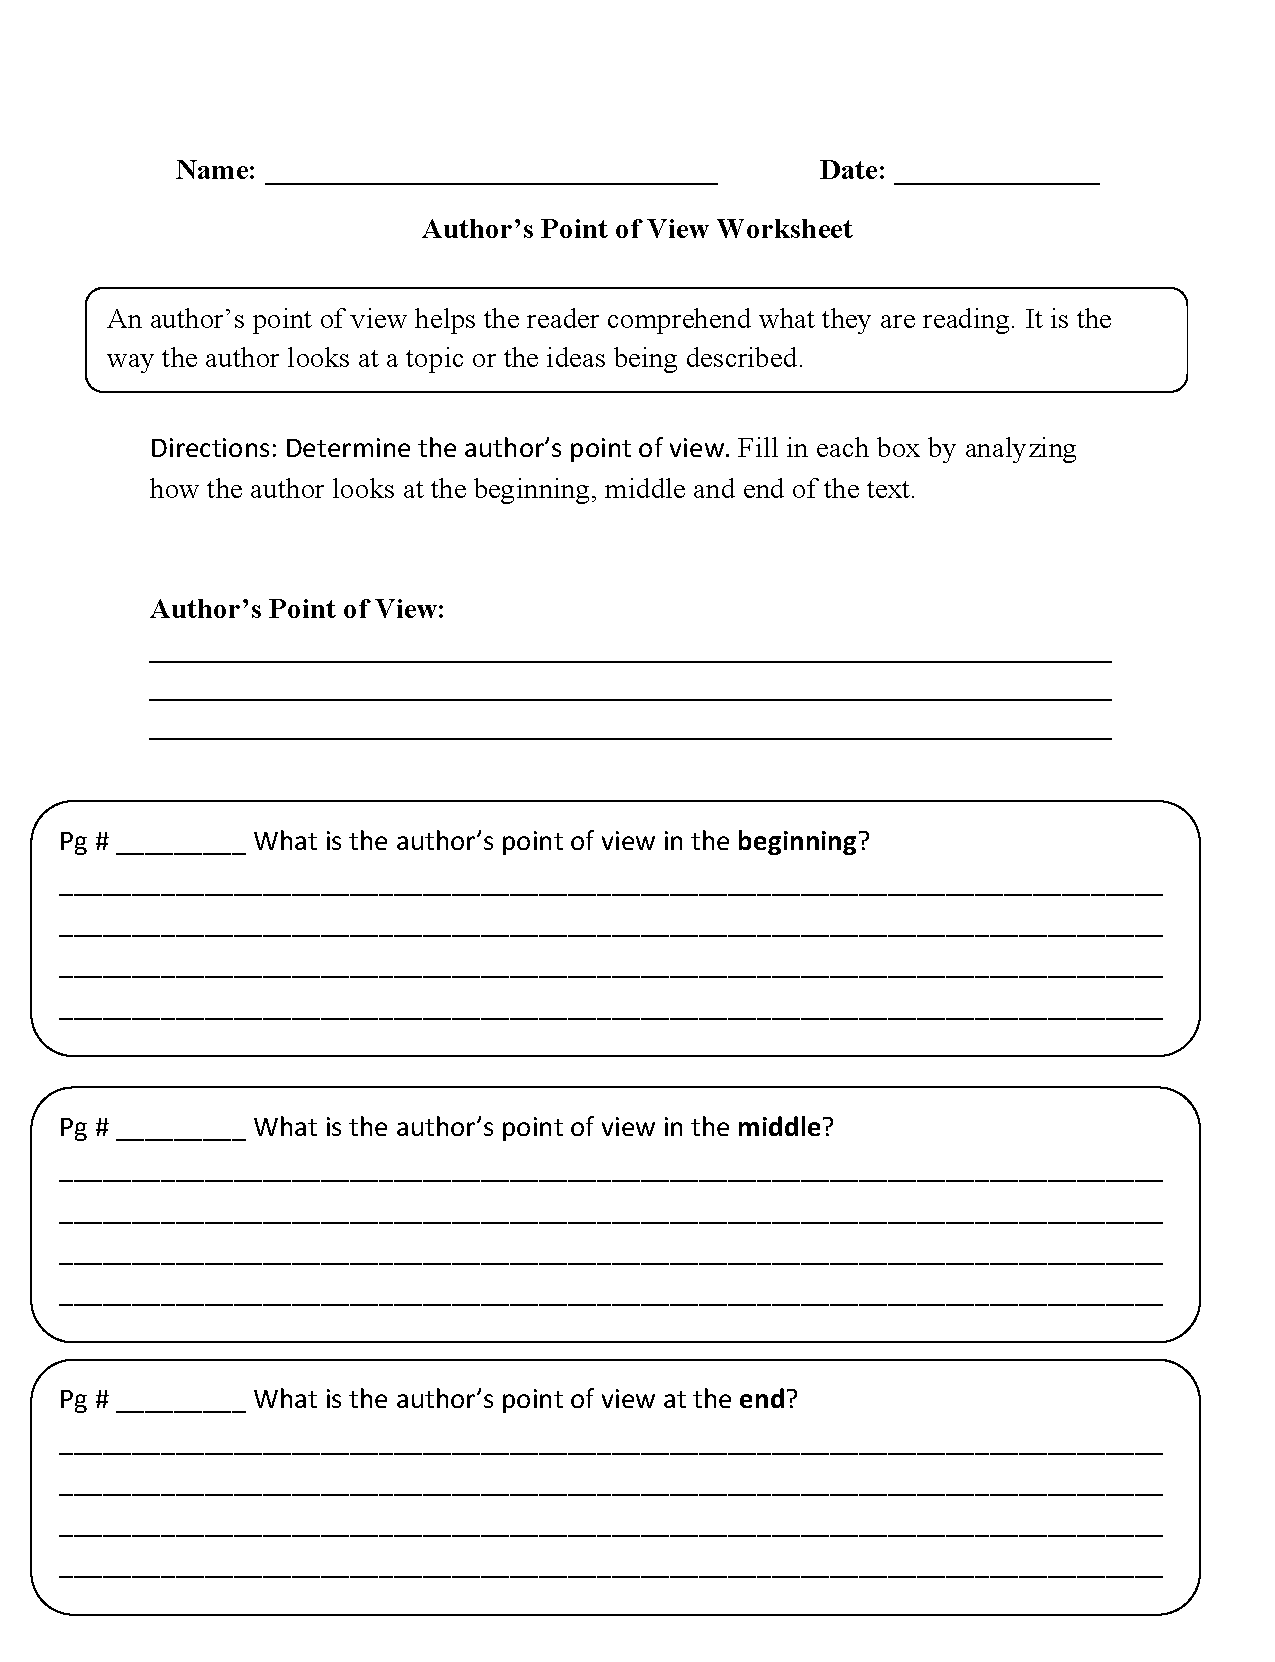 Weirdmailus  Fascinating Englishlinxcom  Point Of View Worksheets With Interesting Point Of View Worksheets With Archaic Th Grade Vocabulary Worksheets Free Also Identifying Algebraic Properties Worksheet In Addition Free Personification Worksheets And Password Protect Worksheet As Well As Multiplication And Division Facts Worksheets Additionally Word Games Printable Worksheets From Englishlinxcom With Weirdmailus  Interesting Englishlinxcom  Point Of View Worksheets With Archaic Point Of View Worksheets And Fascinating Th Grade Vocabulary Worksheets Free Also Identifying Algebraic Properties Worksheet In Addition Free Personification Worksheets From Englishlinxcom